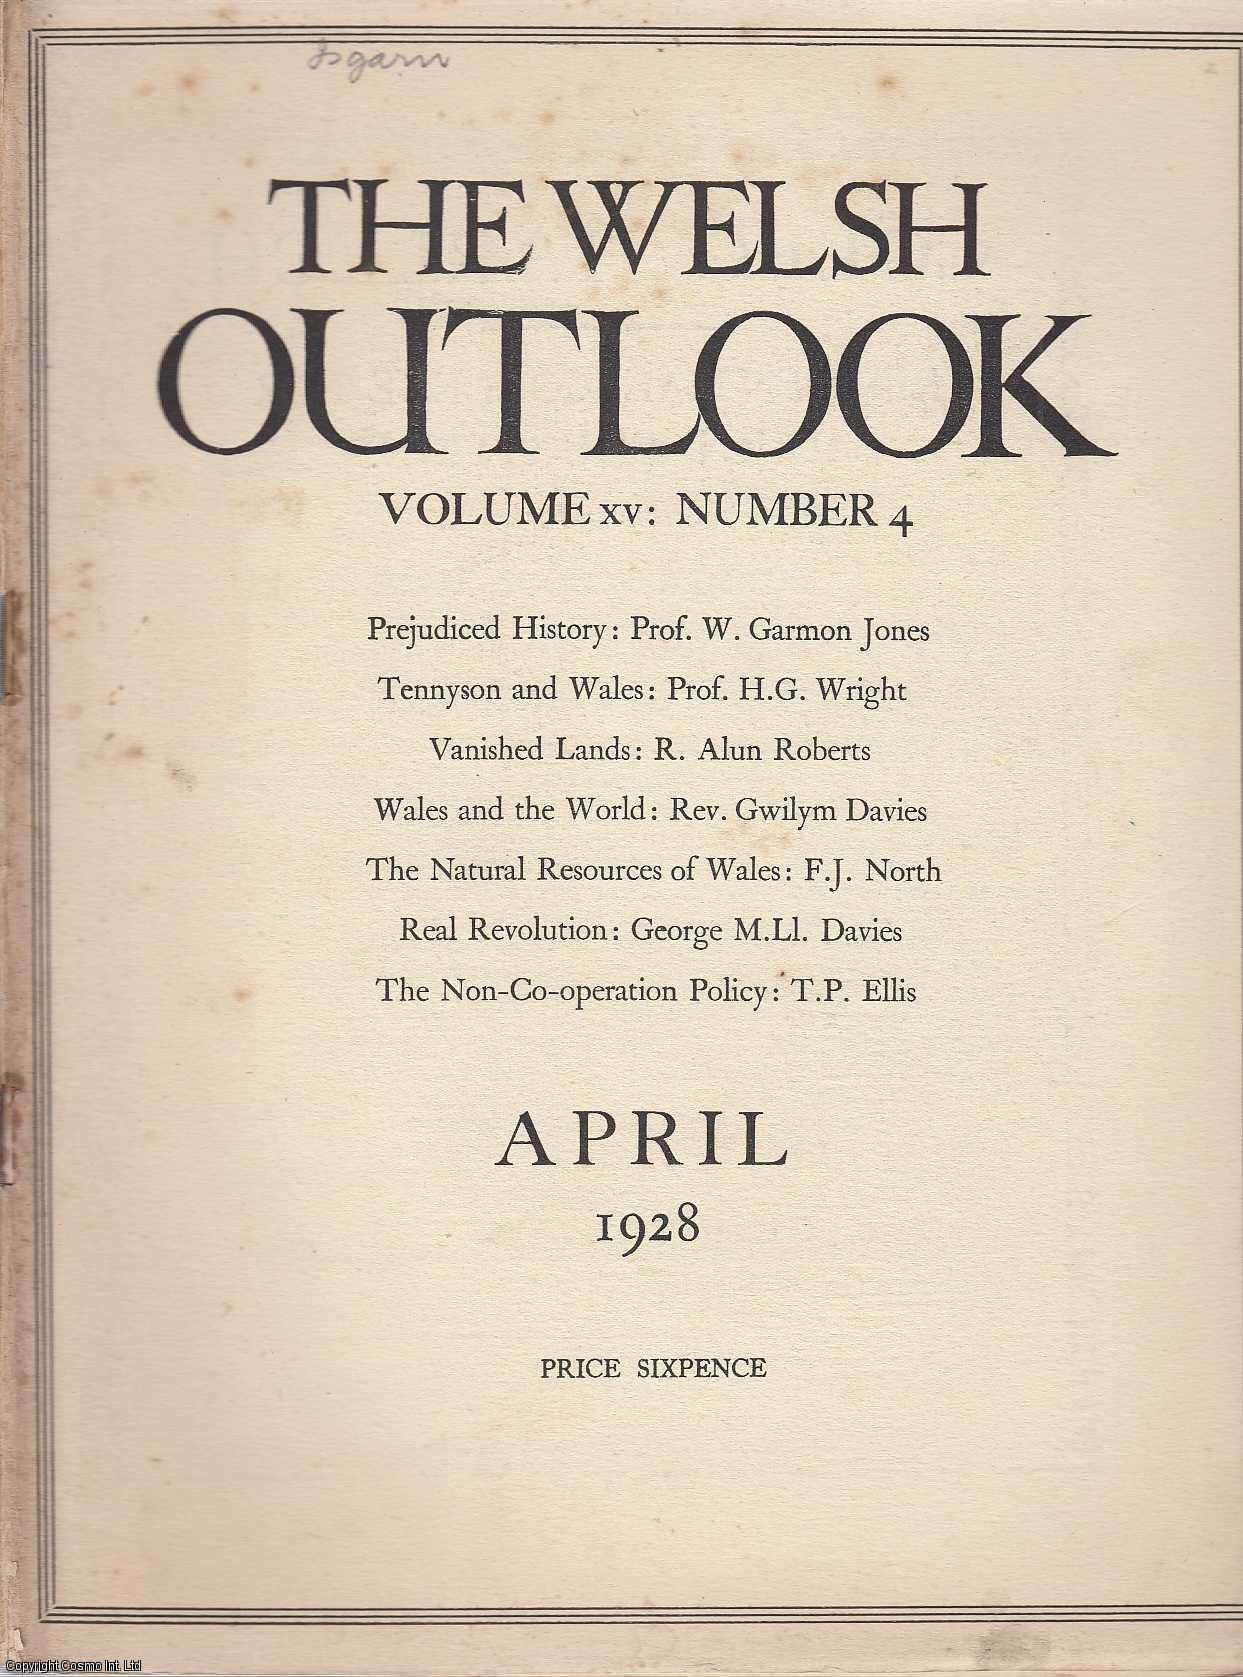 The Welsh Outlook. A Monthly Journal of National Social Progress. April, 1928. Contains; Prejudiced History: A Criticism of The Welsh Language Report by W. Garmon Jones; Tennyson and Wales by H.G. Wright; Vanished Lands by R. Alun Roberts; Wales and The World by Rev. Gwilym Davies; The Structure of Reality by D. Miall Edwards; Little Tales by T. Hughes Jones; The National Resources of Wales - III Limestone by F.J. North; Relativity and a Railway Ticket by Edward greenly; S'Nellie's Welsh Fairy Tales: Lost in The Forest by Eleanor Boniface; Real Revolution by George M. Ll. Davies; Wales at Work - A Social Diary; The Exile's Corner by Hugh Jones., Thomas Jones (Editor)